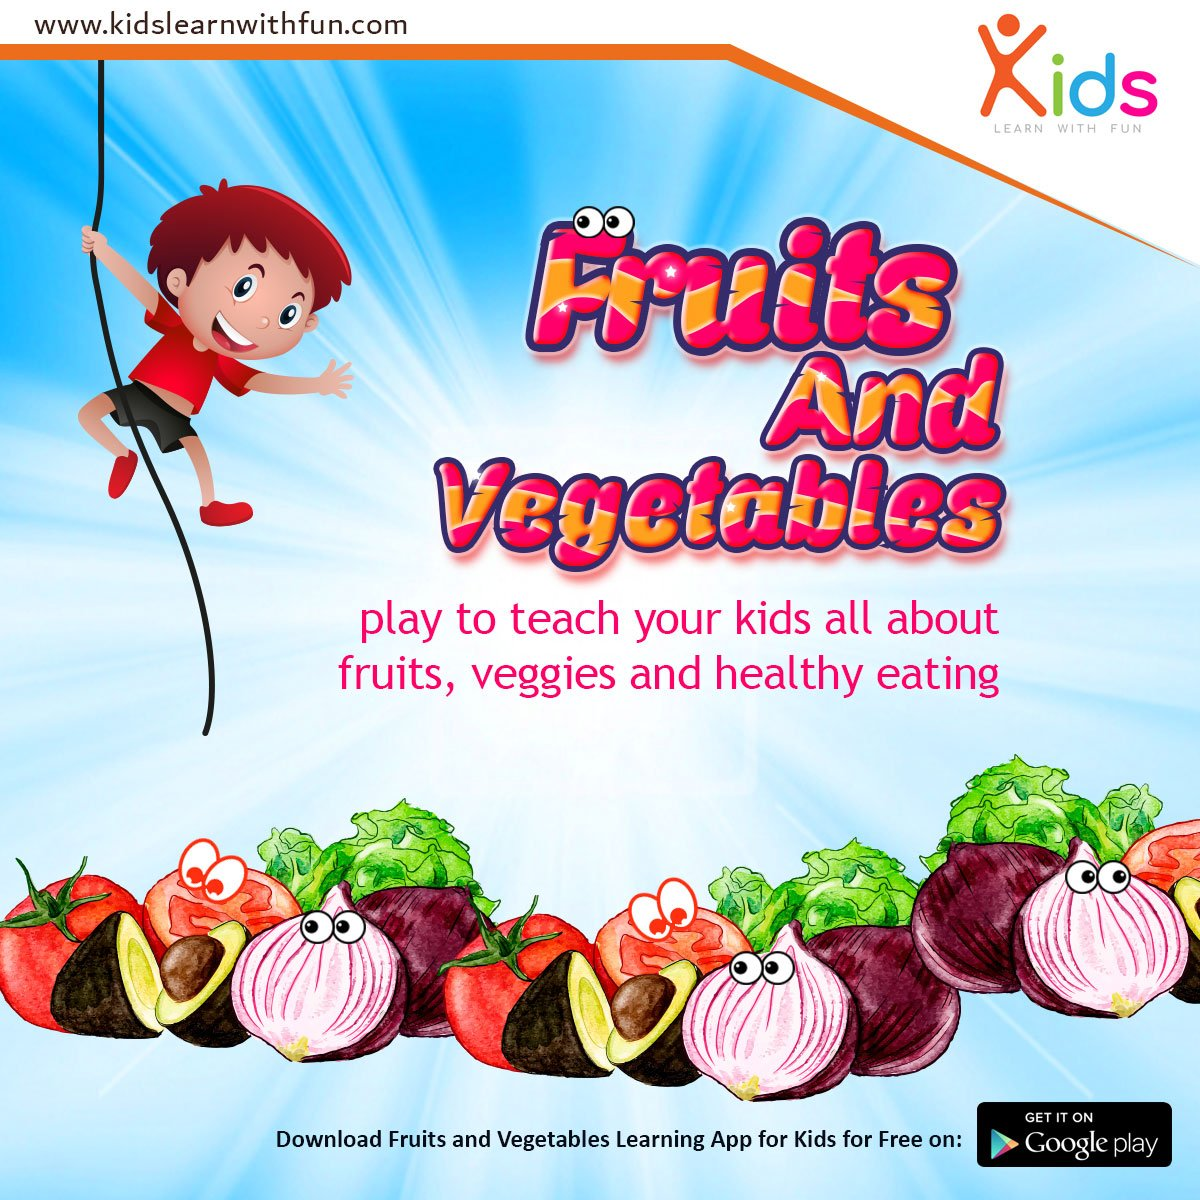 Kids Learn With Fun On Twitter Fruits Vegetables Learning App Kids Https T Co Qdiwk6crha Games Children Parents Teacher Parentsproblems Parentssolution Solution Mobilegame Video Videogame Education Kidslearnwithfun Kidsvisual